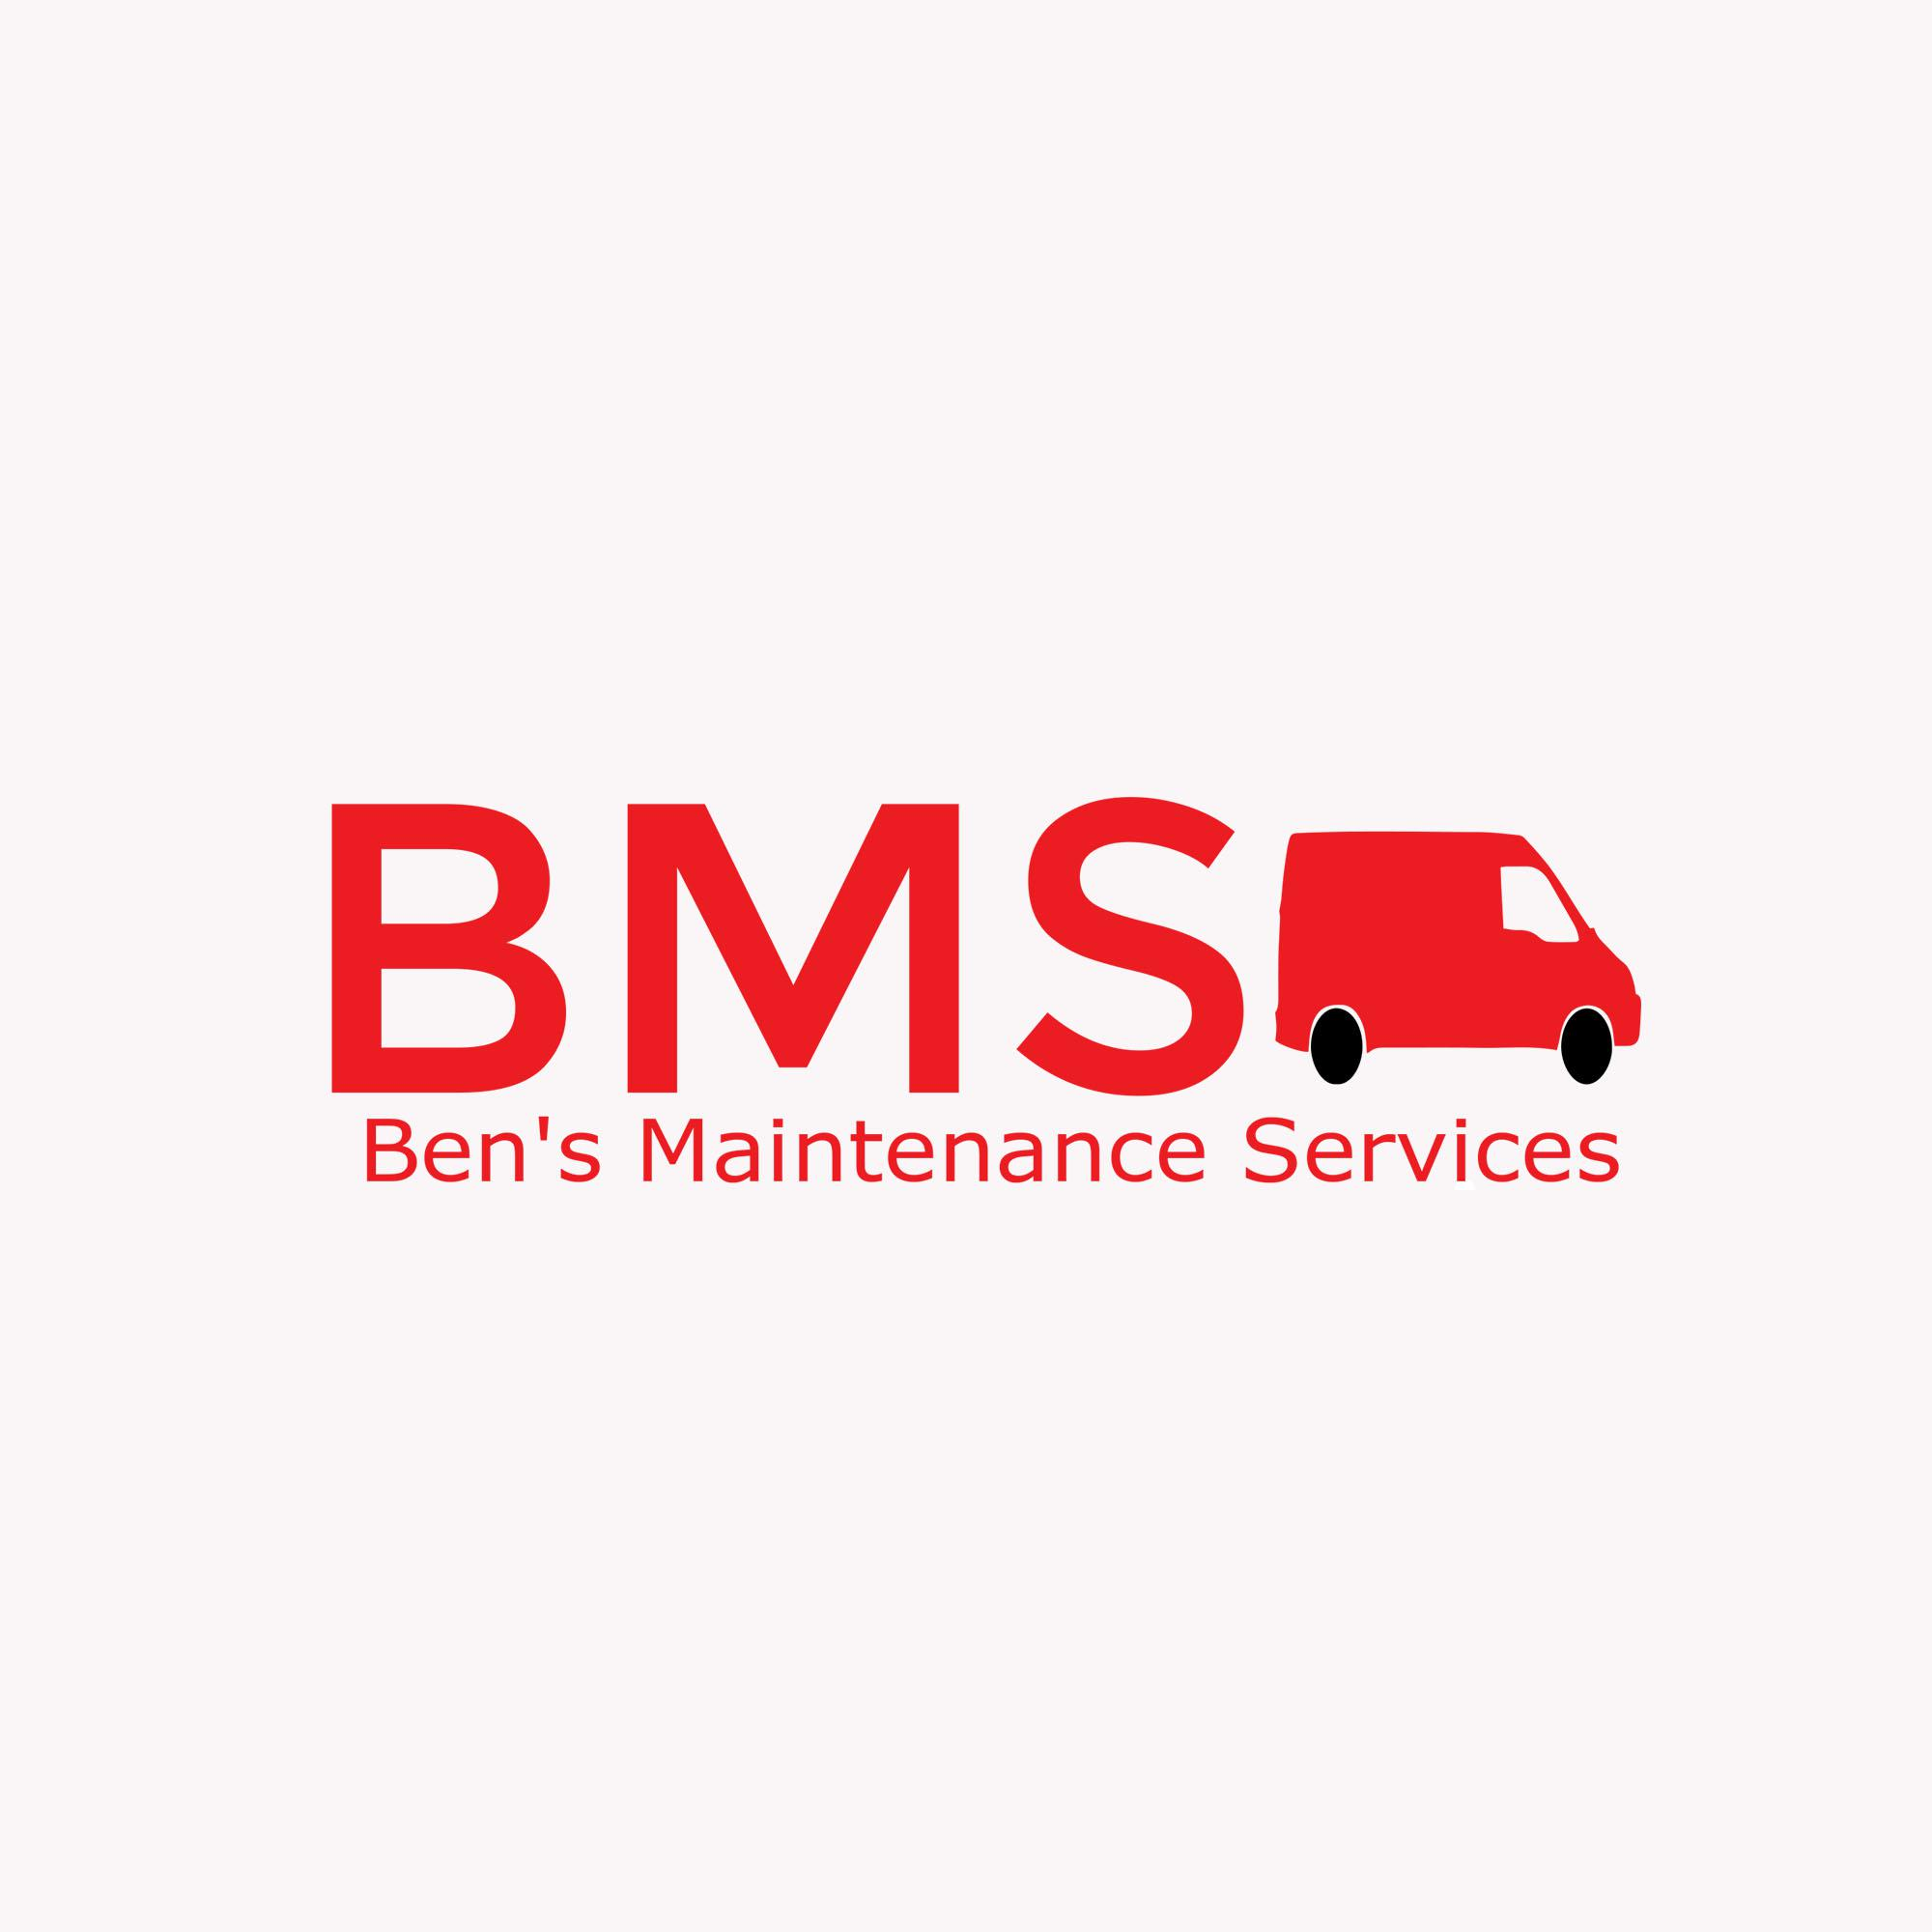 Ben's Maintenance Services Logo